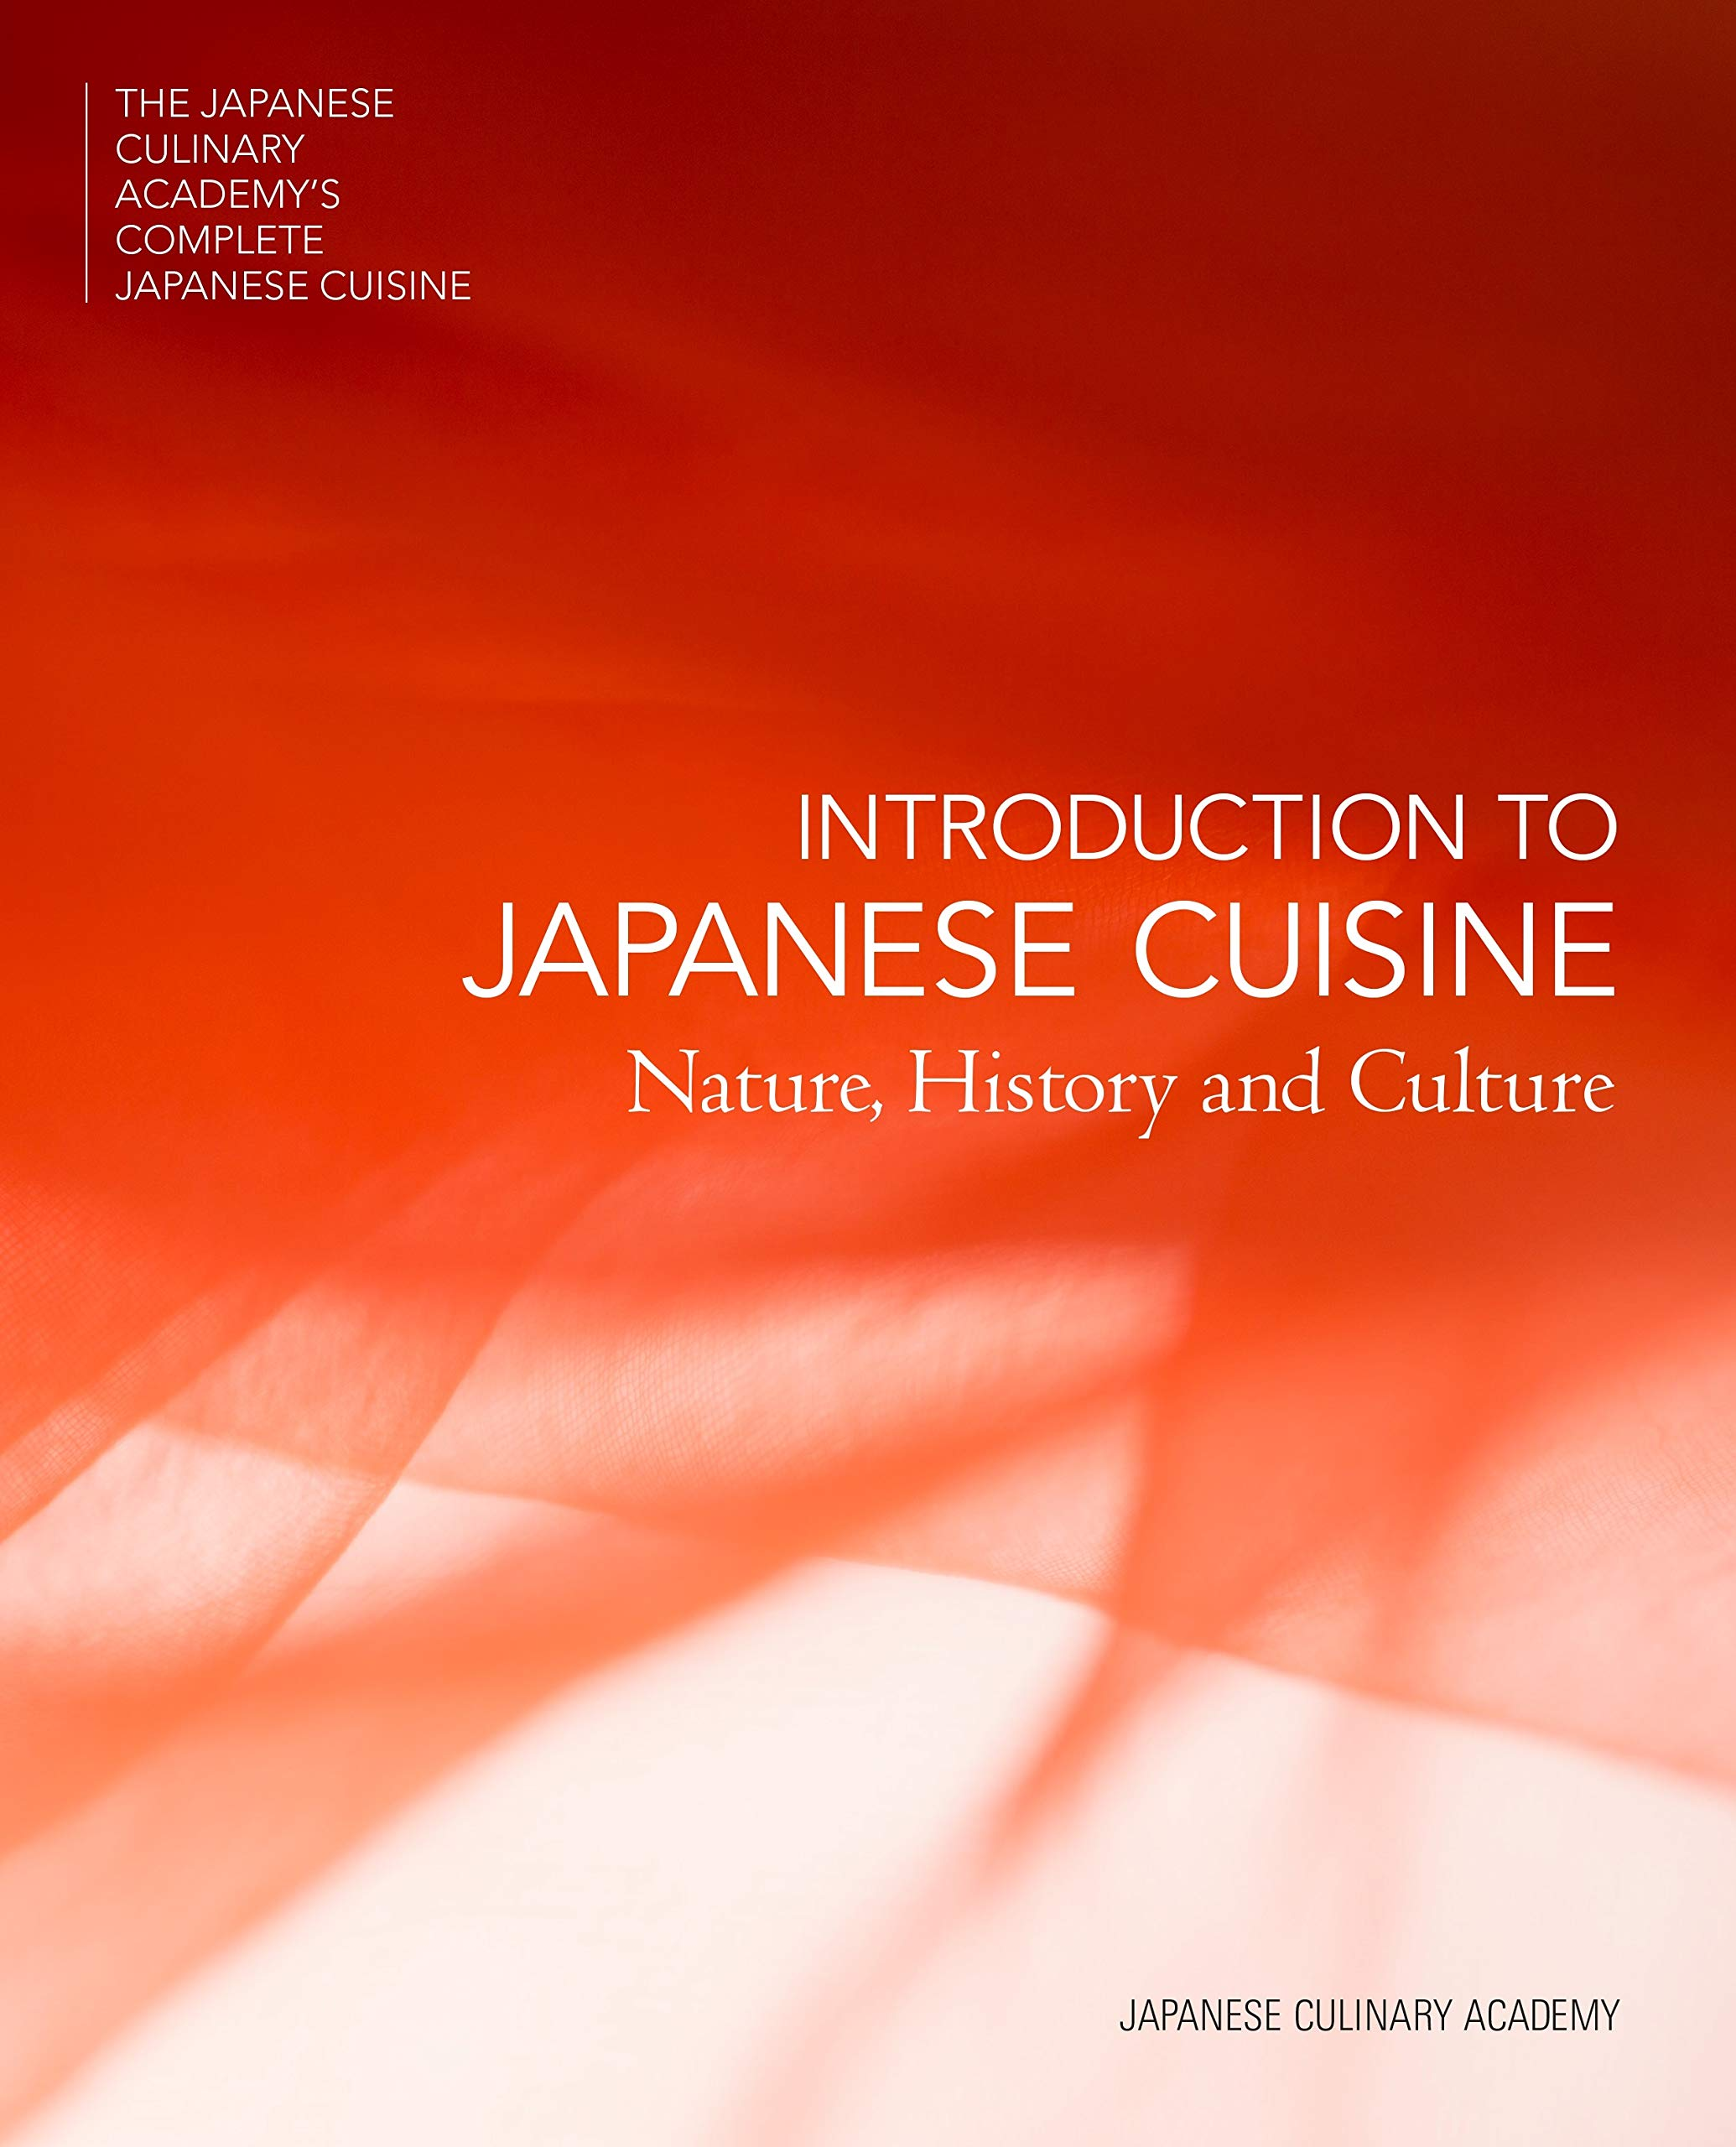 Introduction To Japanese Cuisine  Nature History And Culture  The Japanese Culinary Academy's Complete Japanese Cuisine Band 1